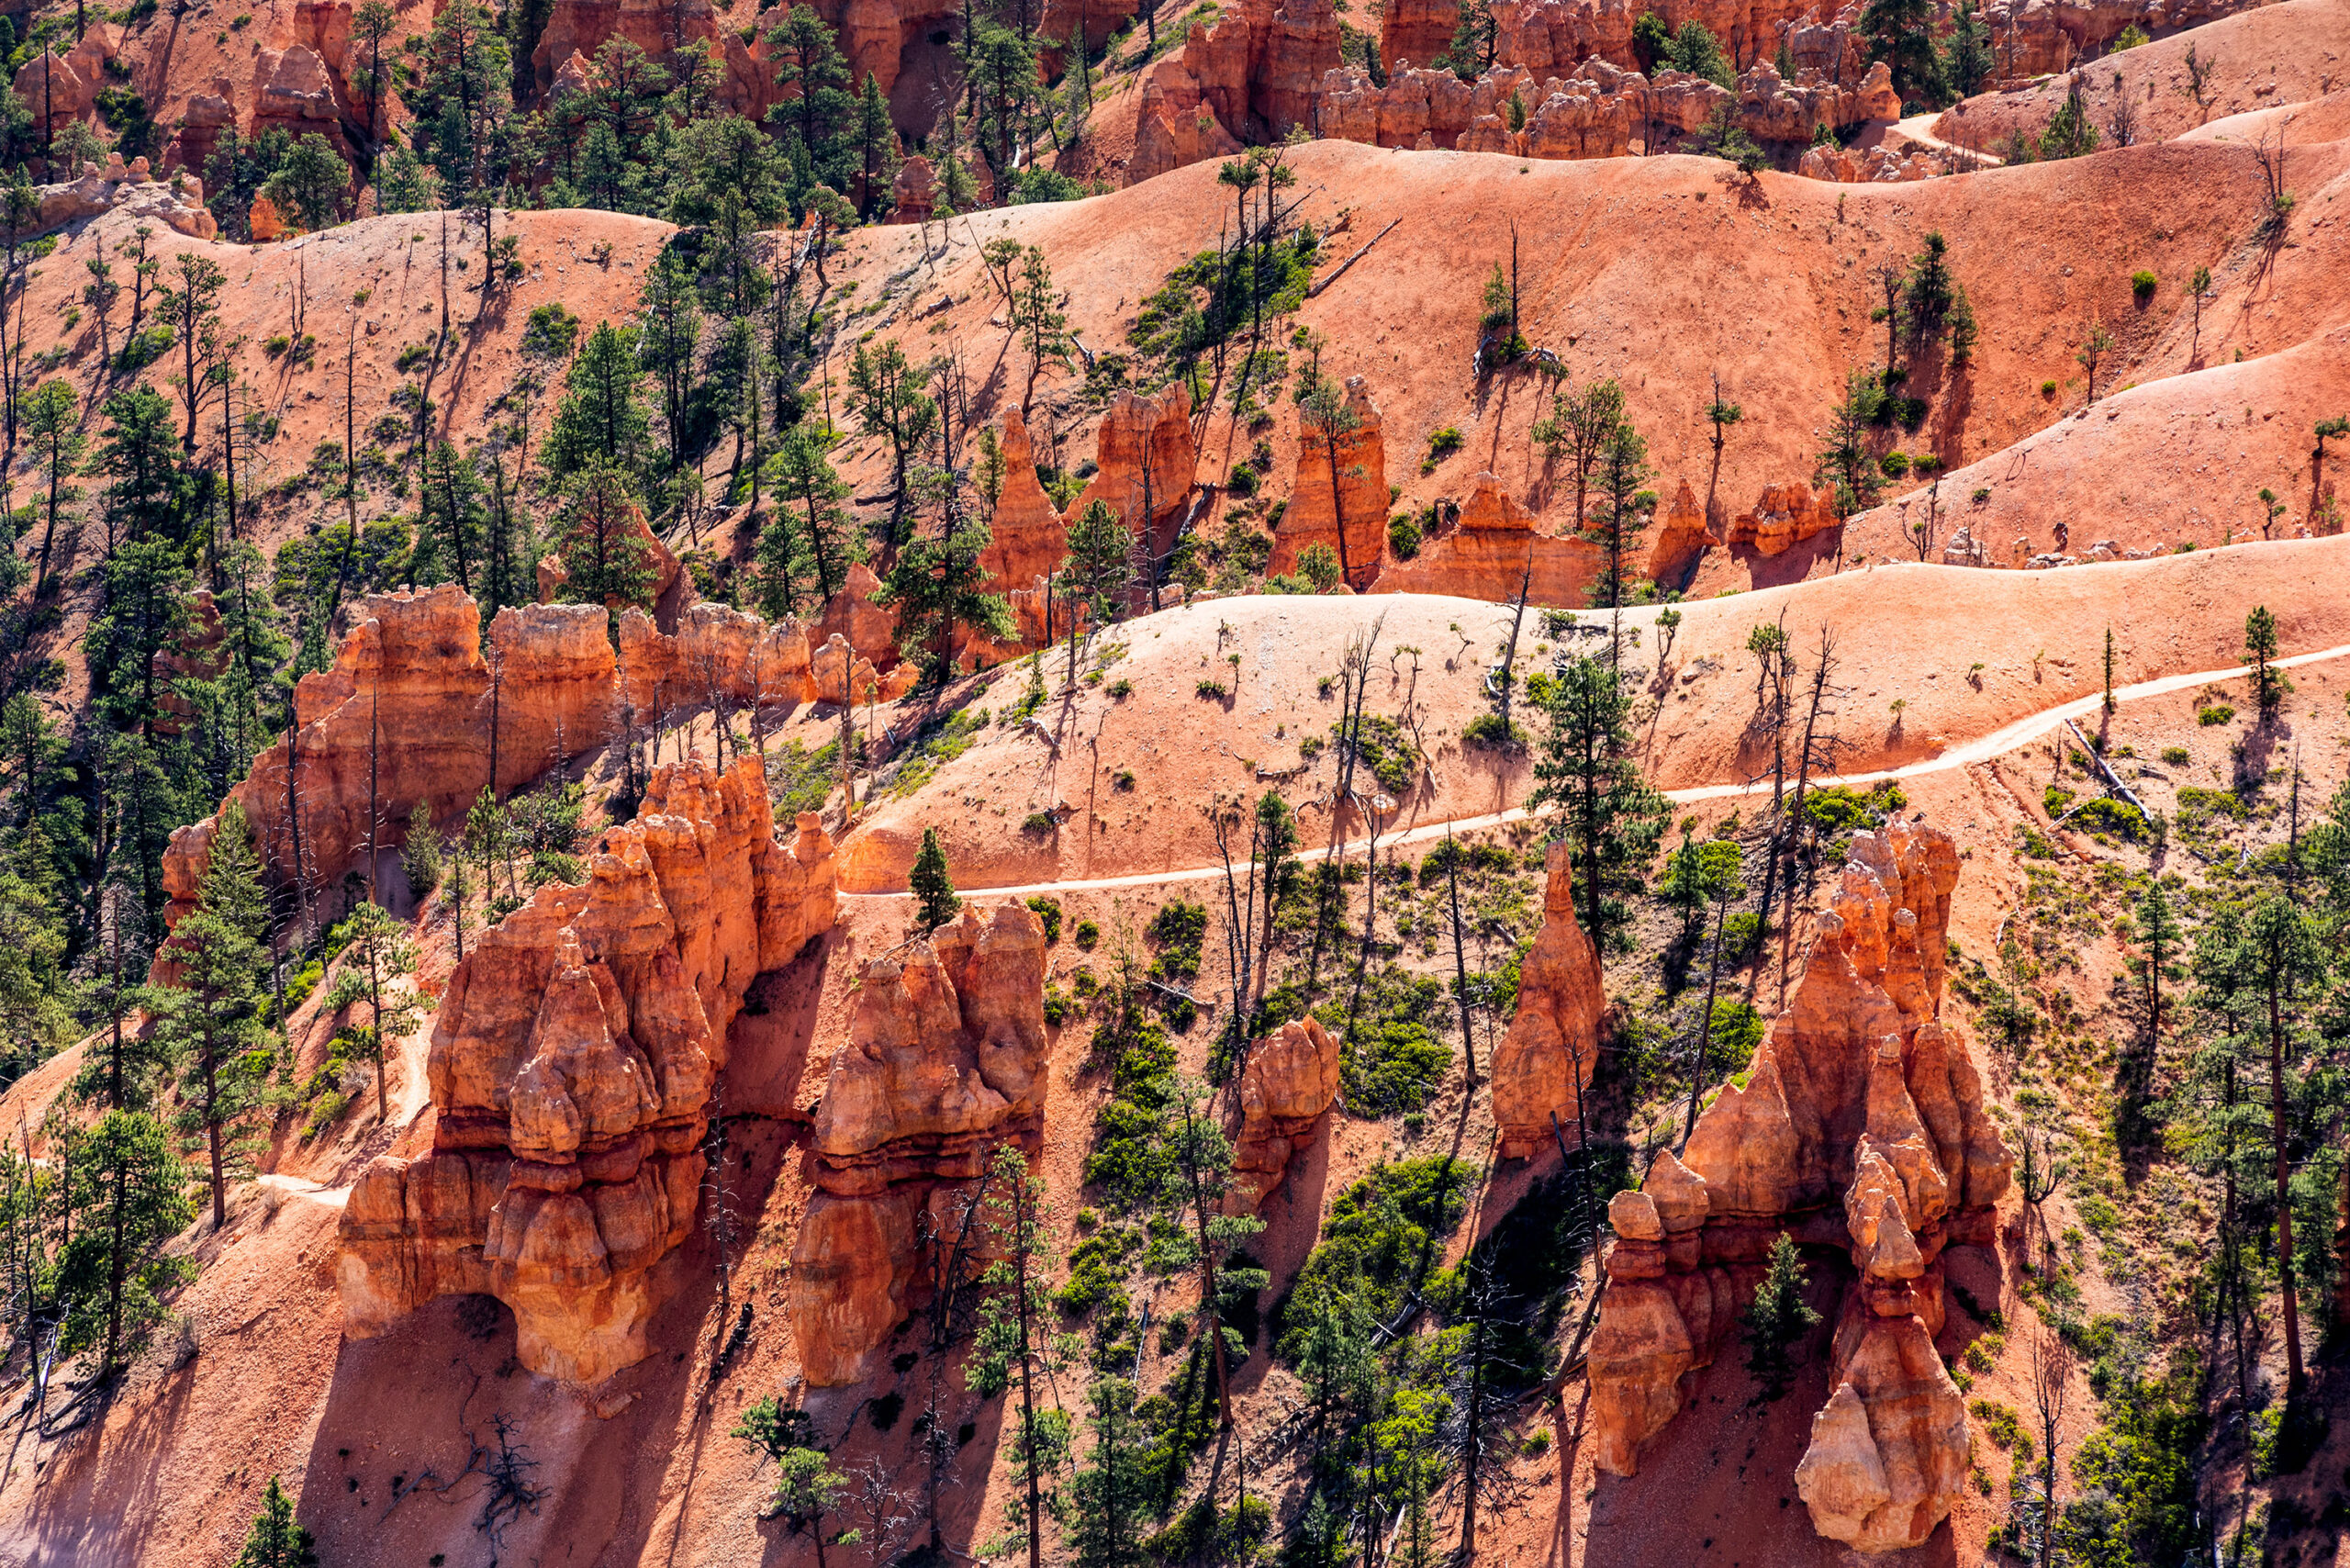 Fine art close-up photography of Bryce Canyon.